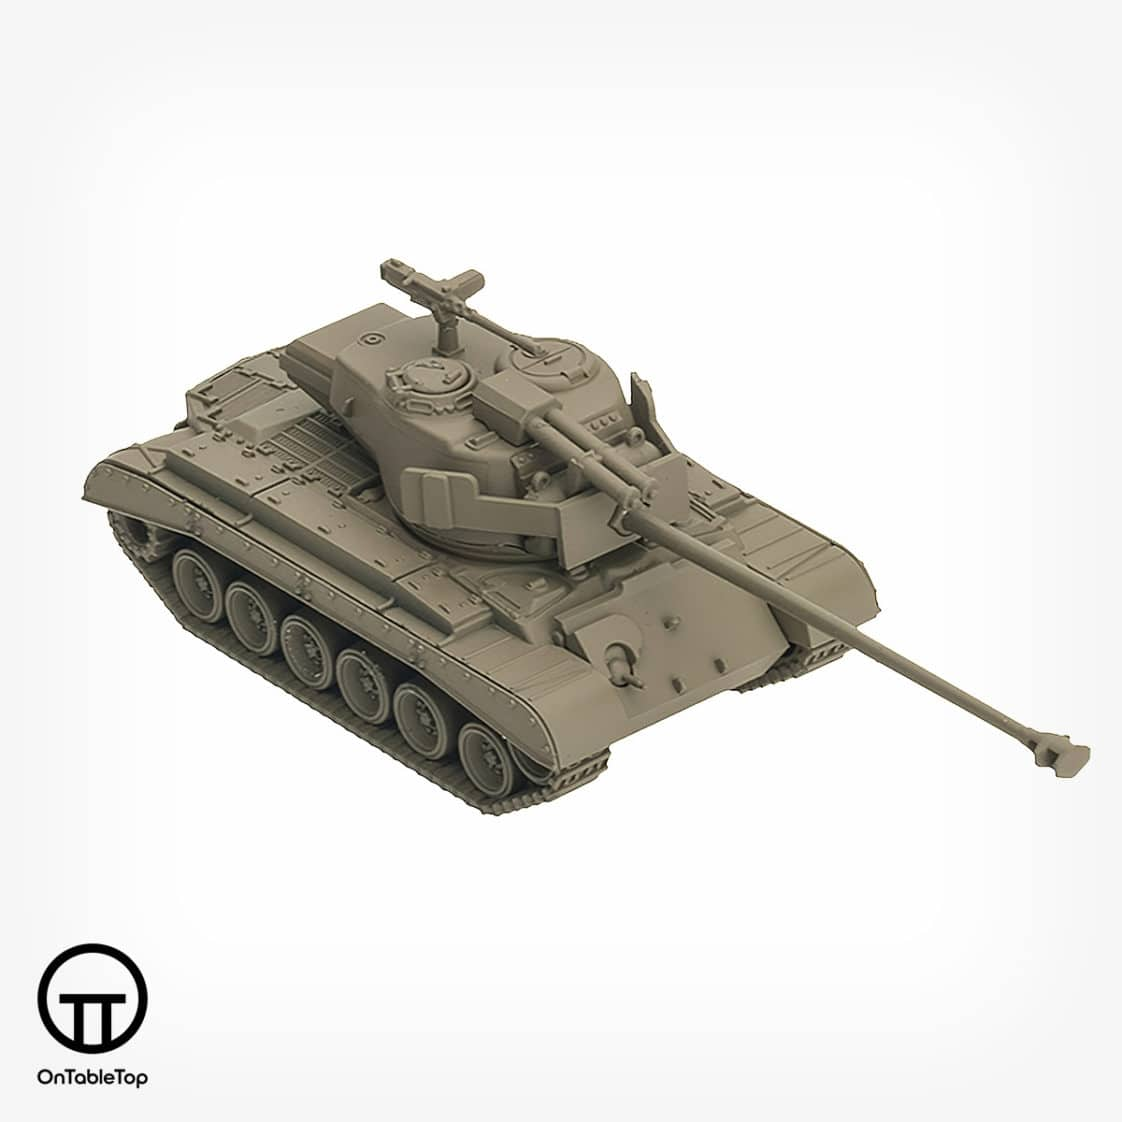 OTT-TANKS03-US-Pershing-Tank-Expansion-Tank-Type-2